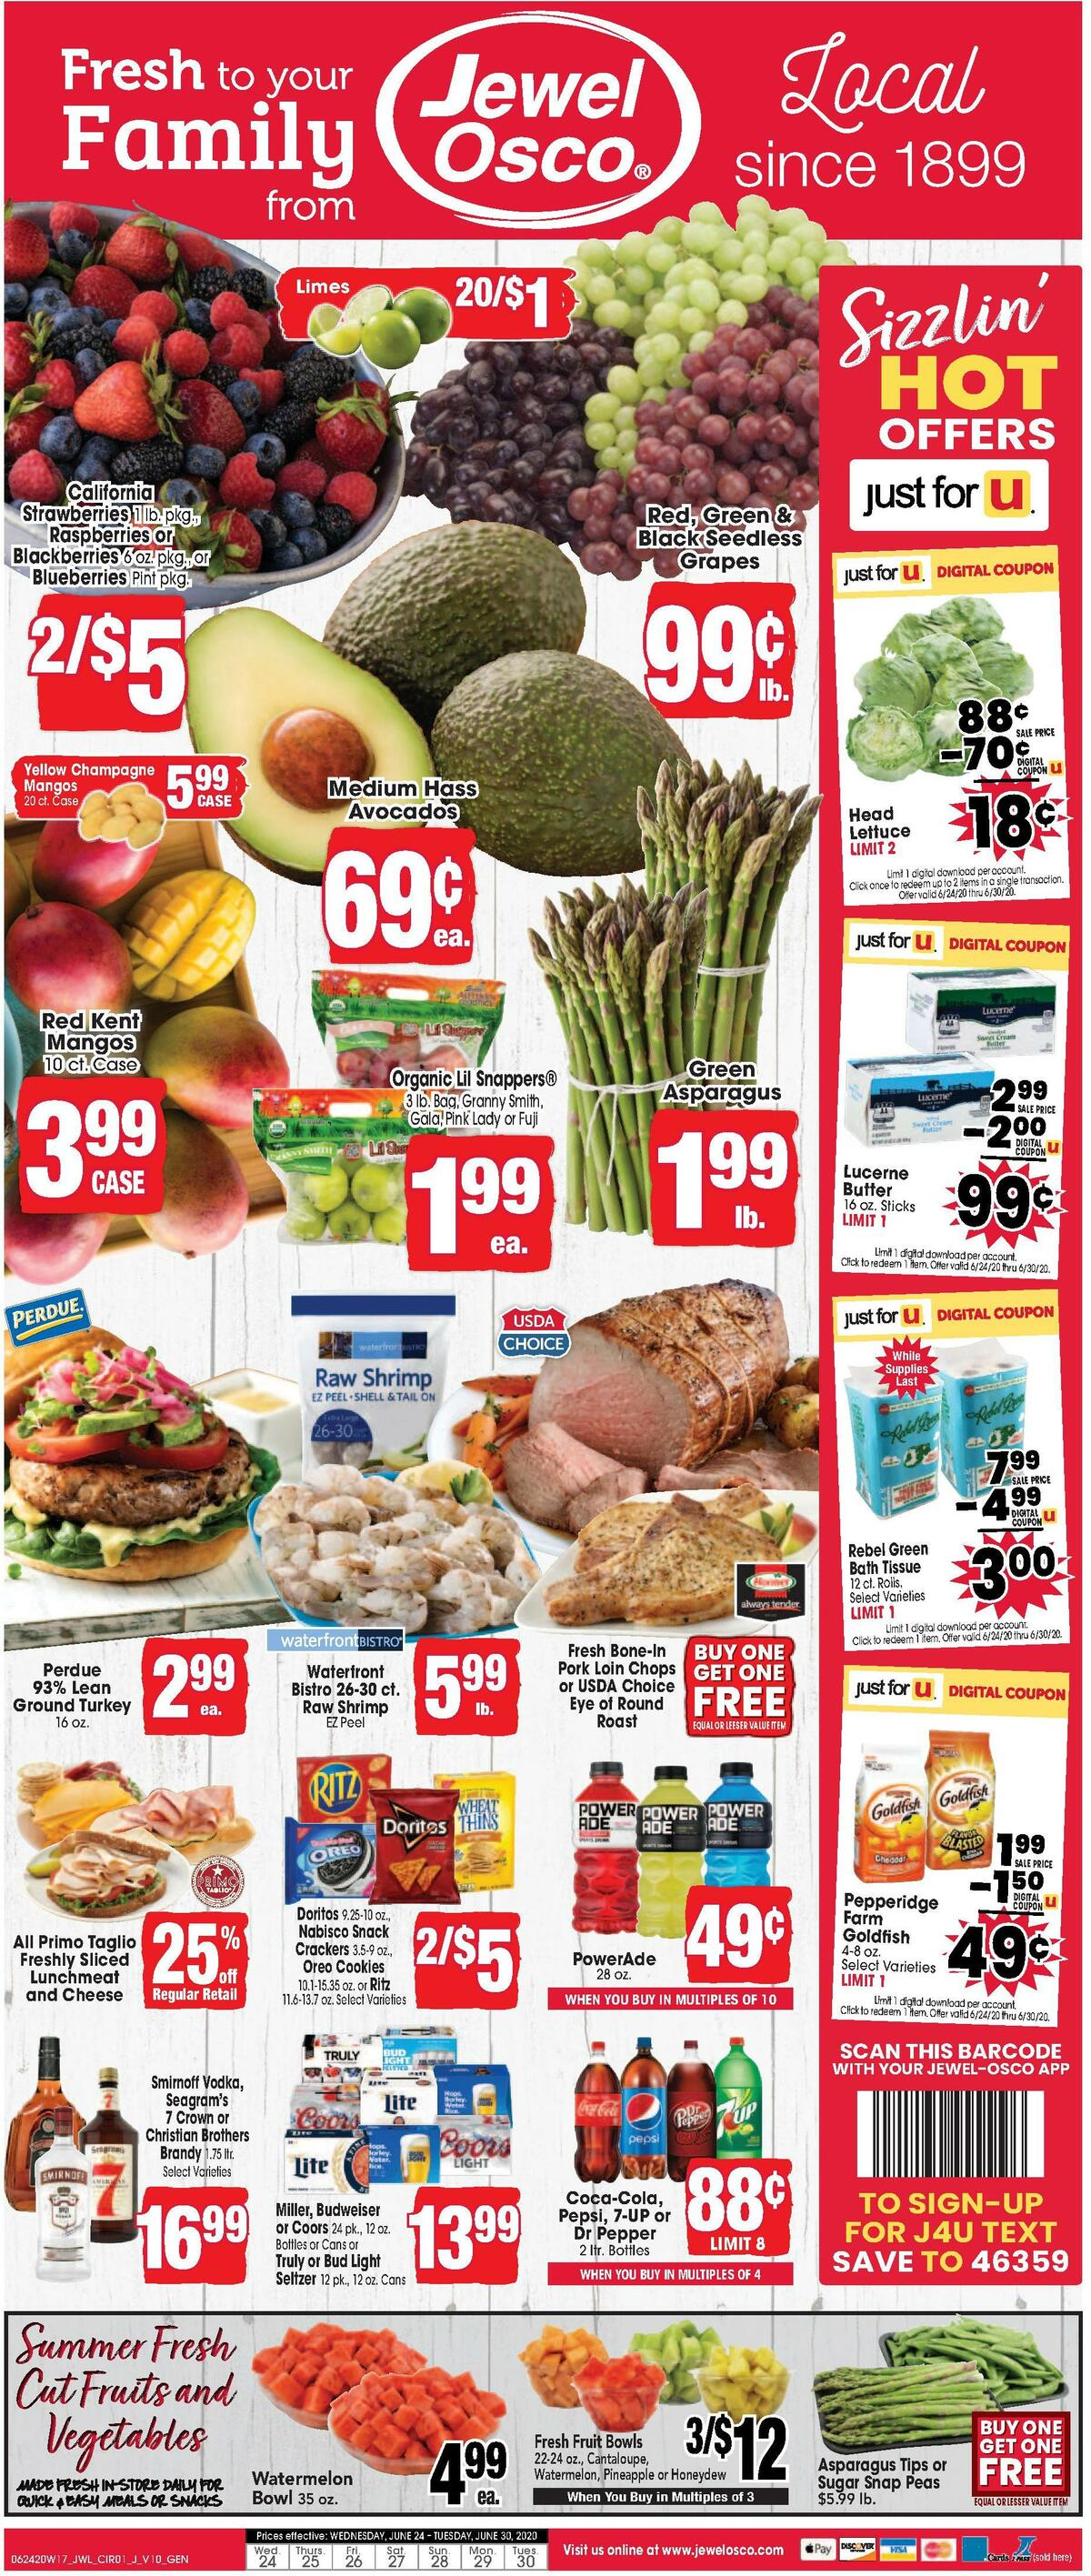 Jewel Osco Weekly Ad from June 24